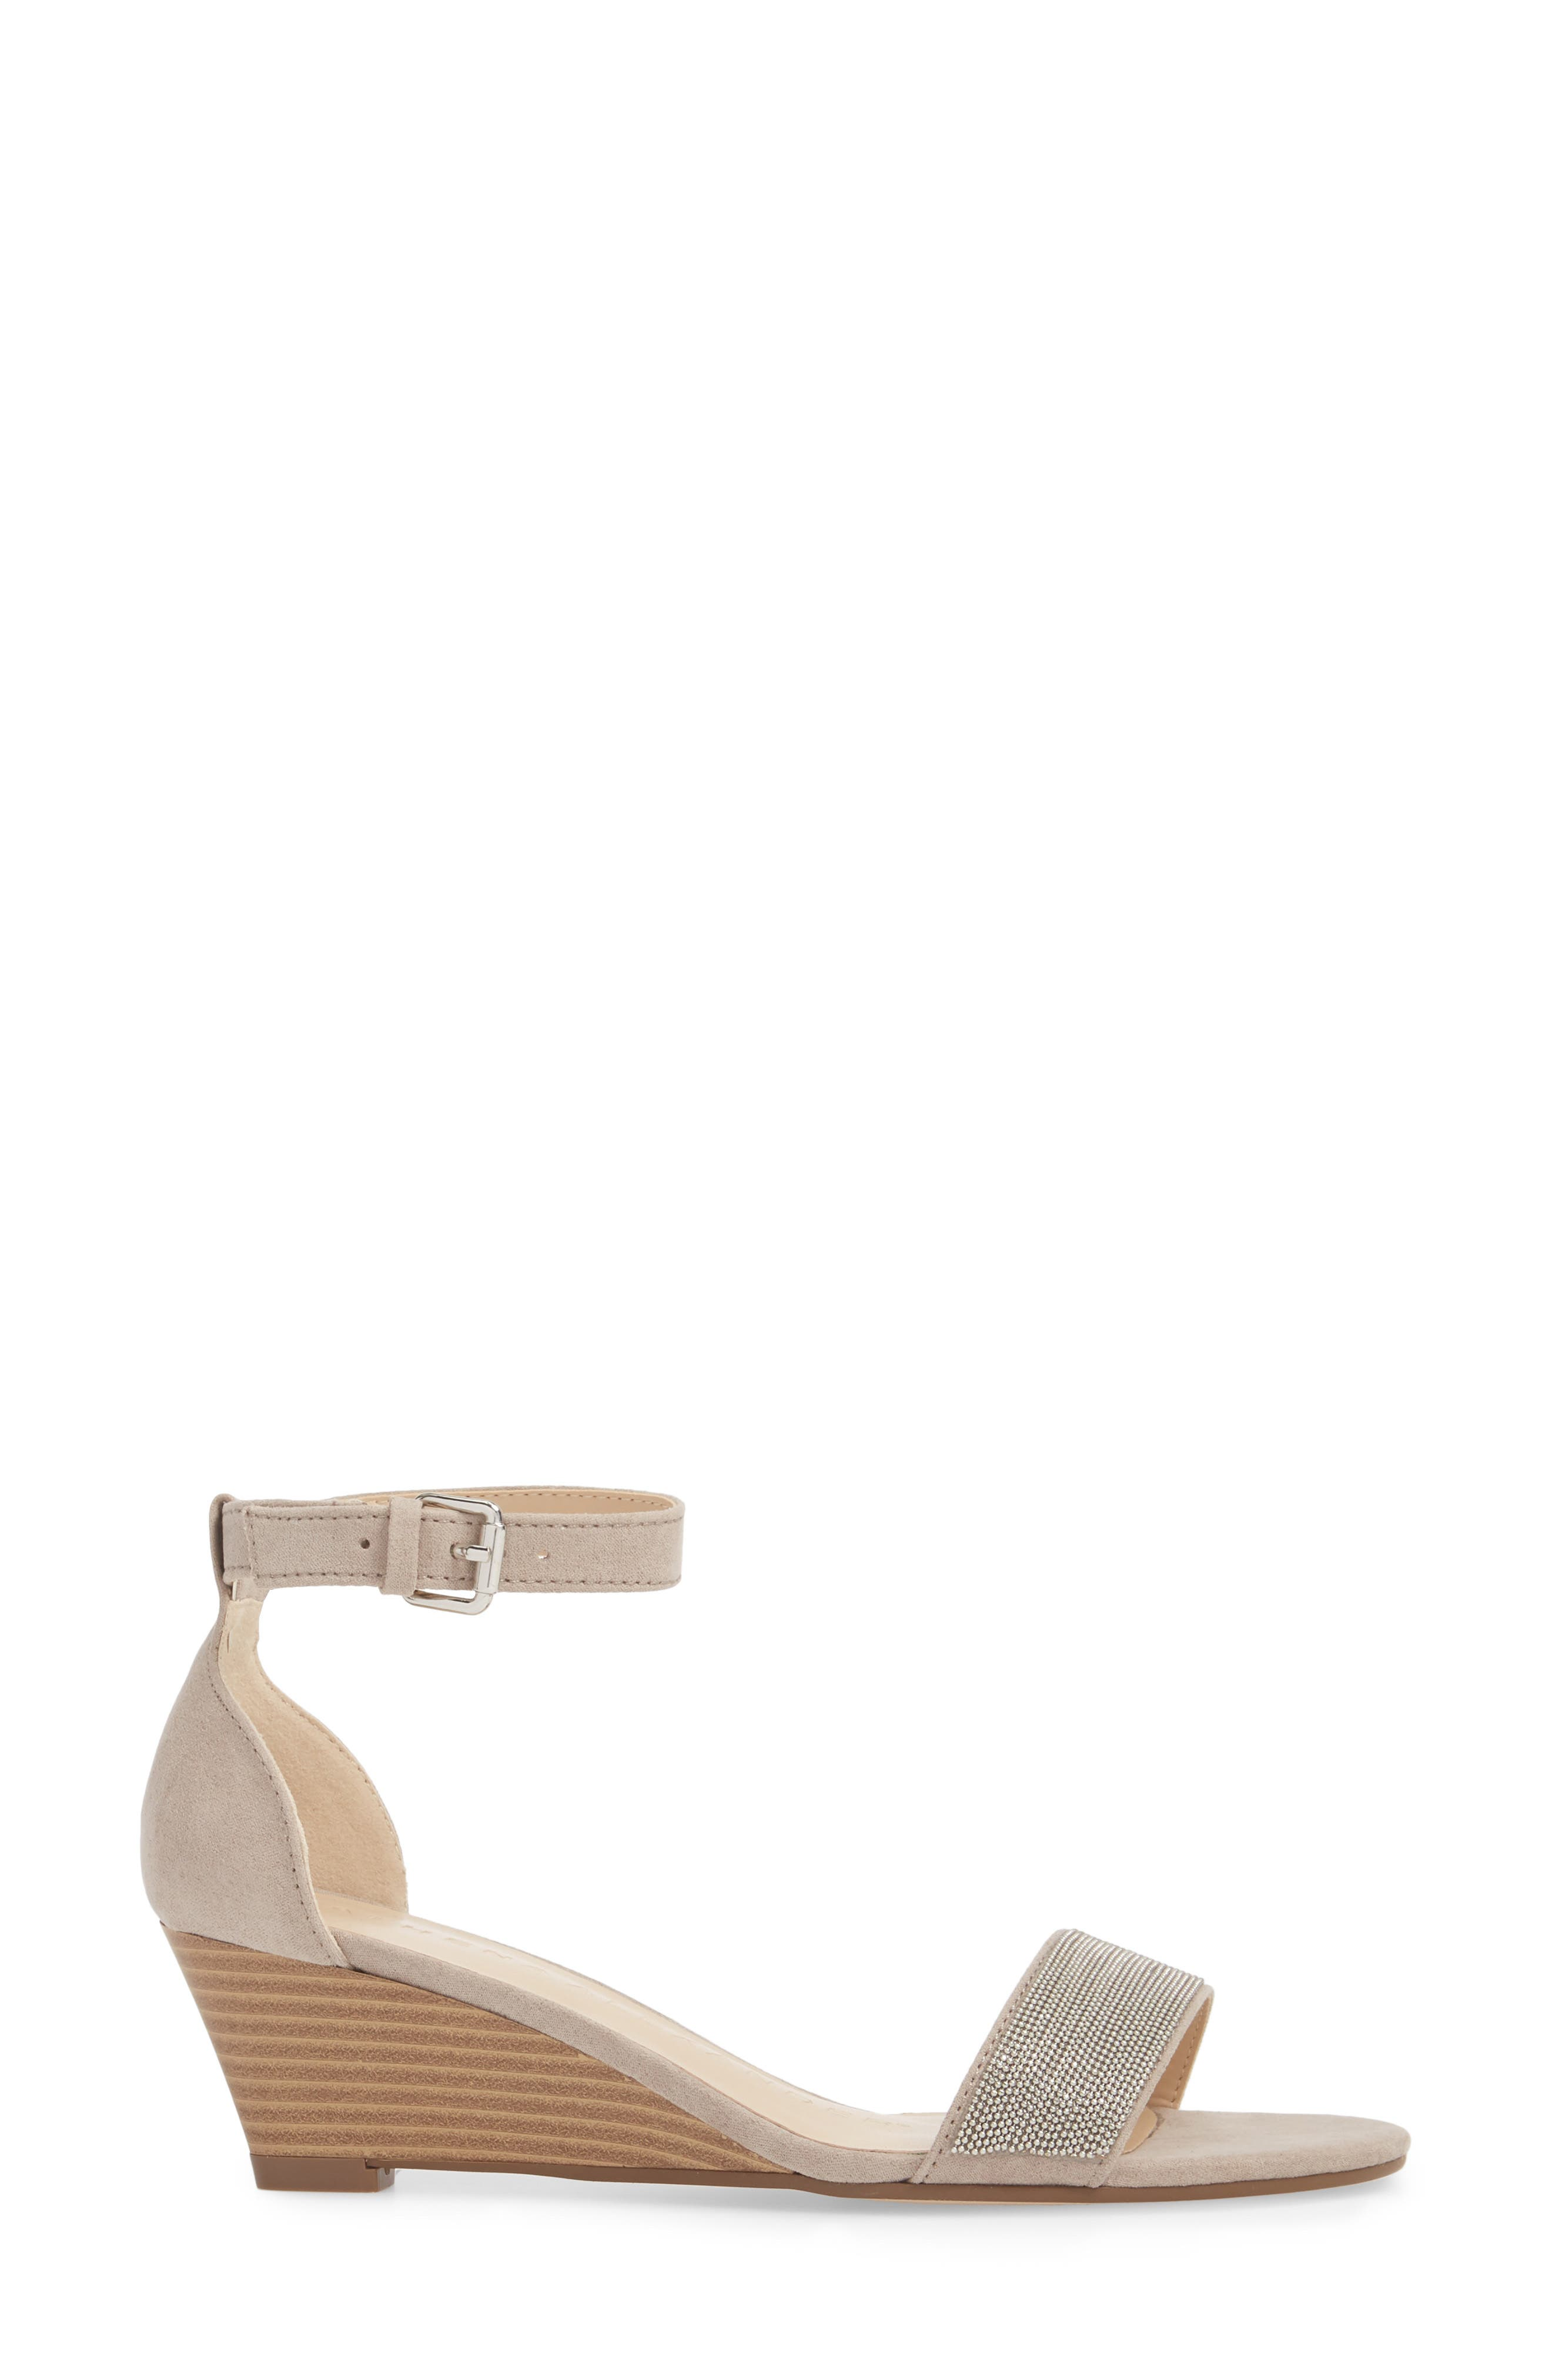 Enfield Ankle Strap Wedge Sandal,                             Alternate thumbnail 3, color,                             Taupe Suede